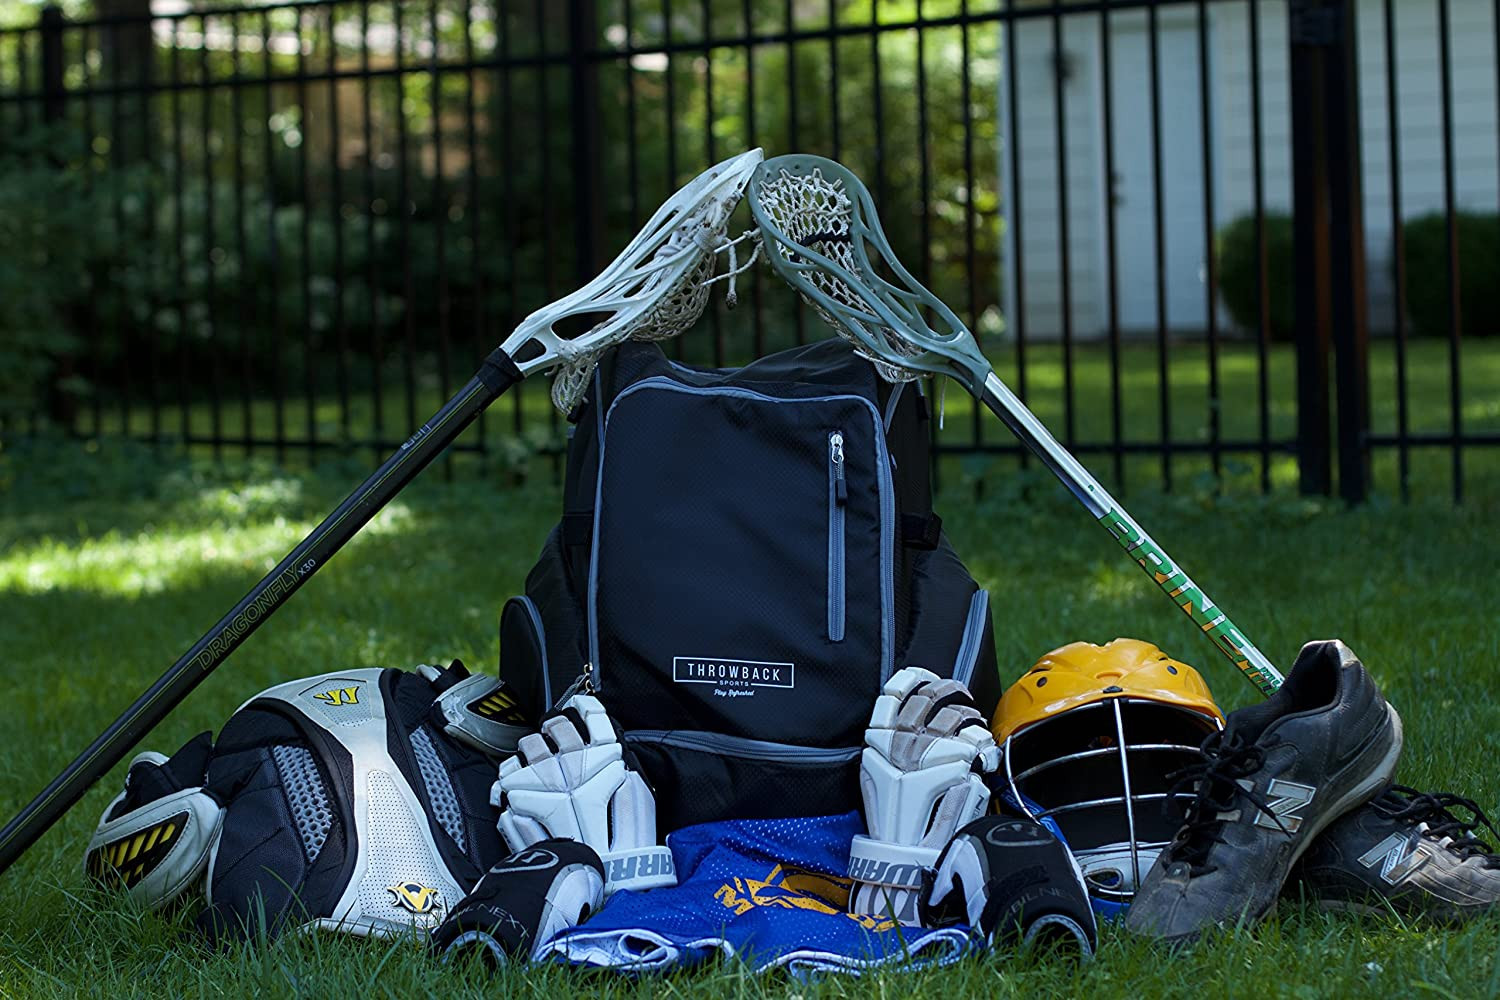 Amazon.com : Throwback Gametime Pack XL - Large Lacrosse Backpack & Field Hockey Bag with Cooler - Perfect for Multi-Sport Athletes - Includes Racquet ...